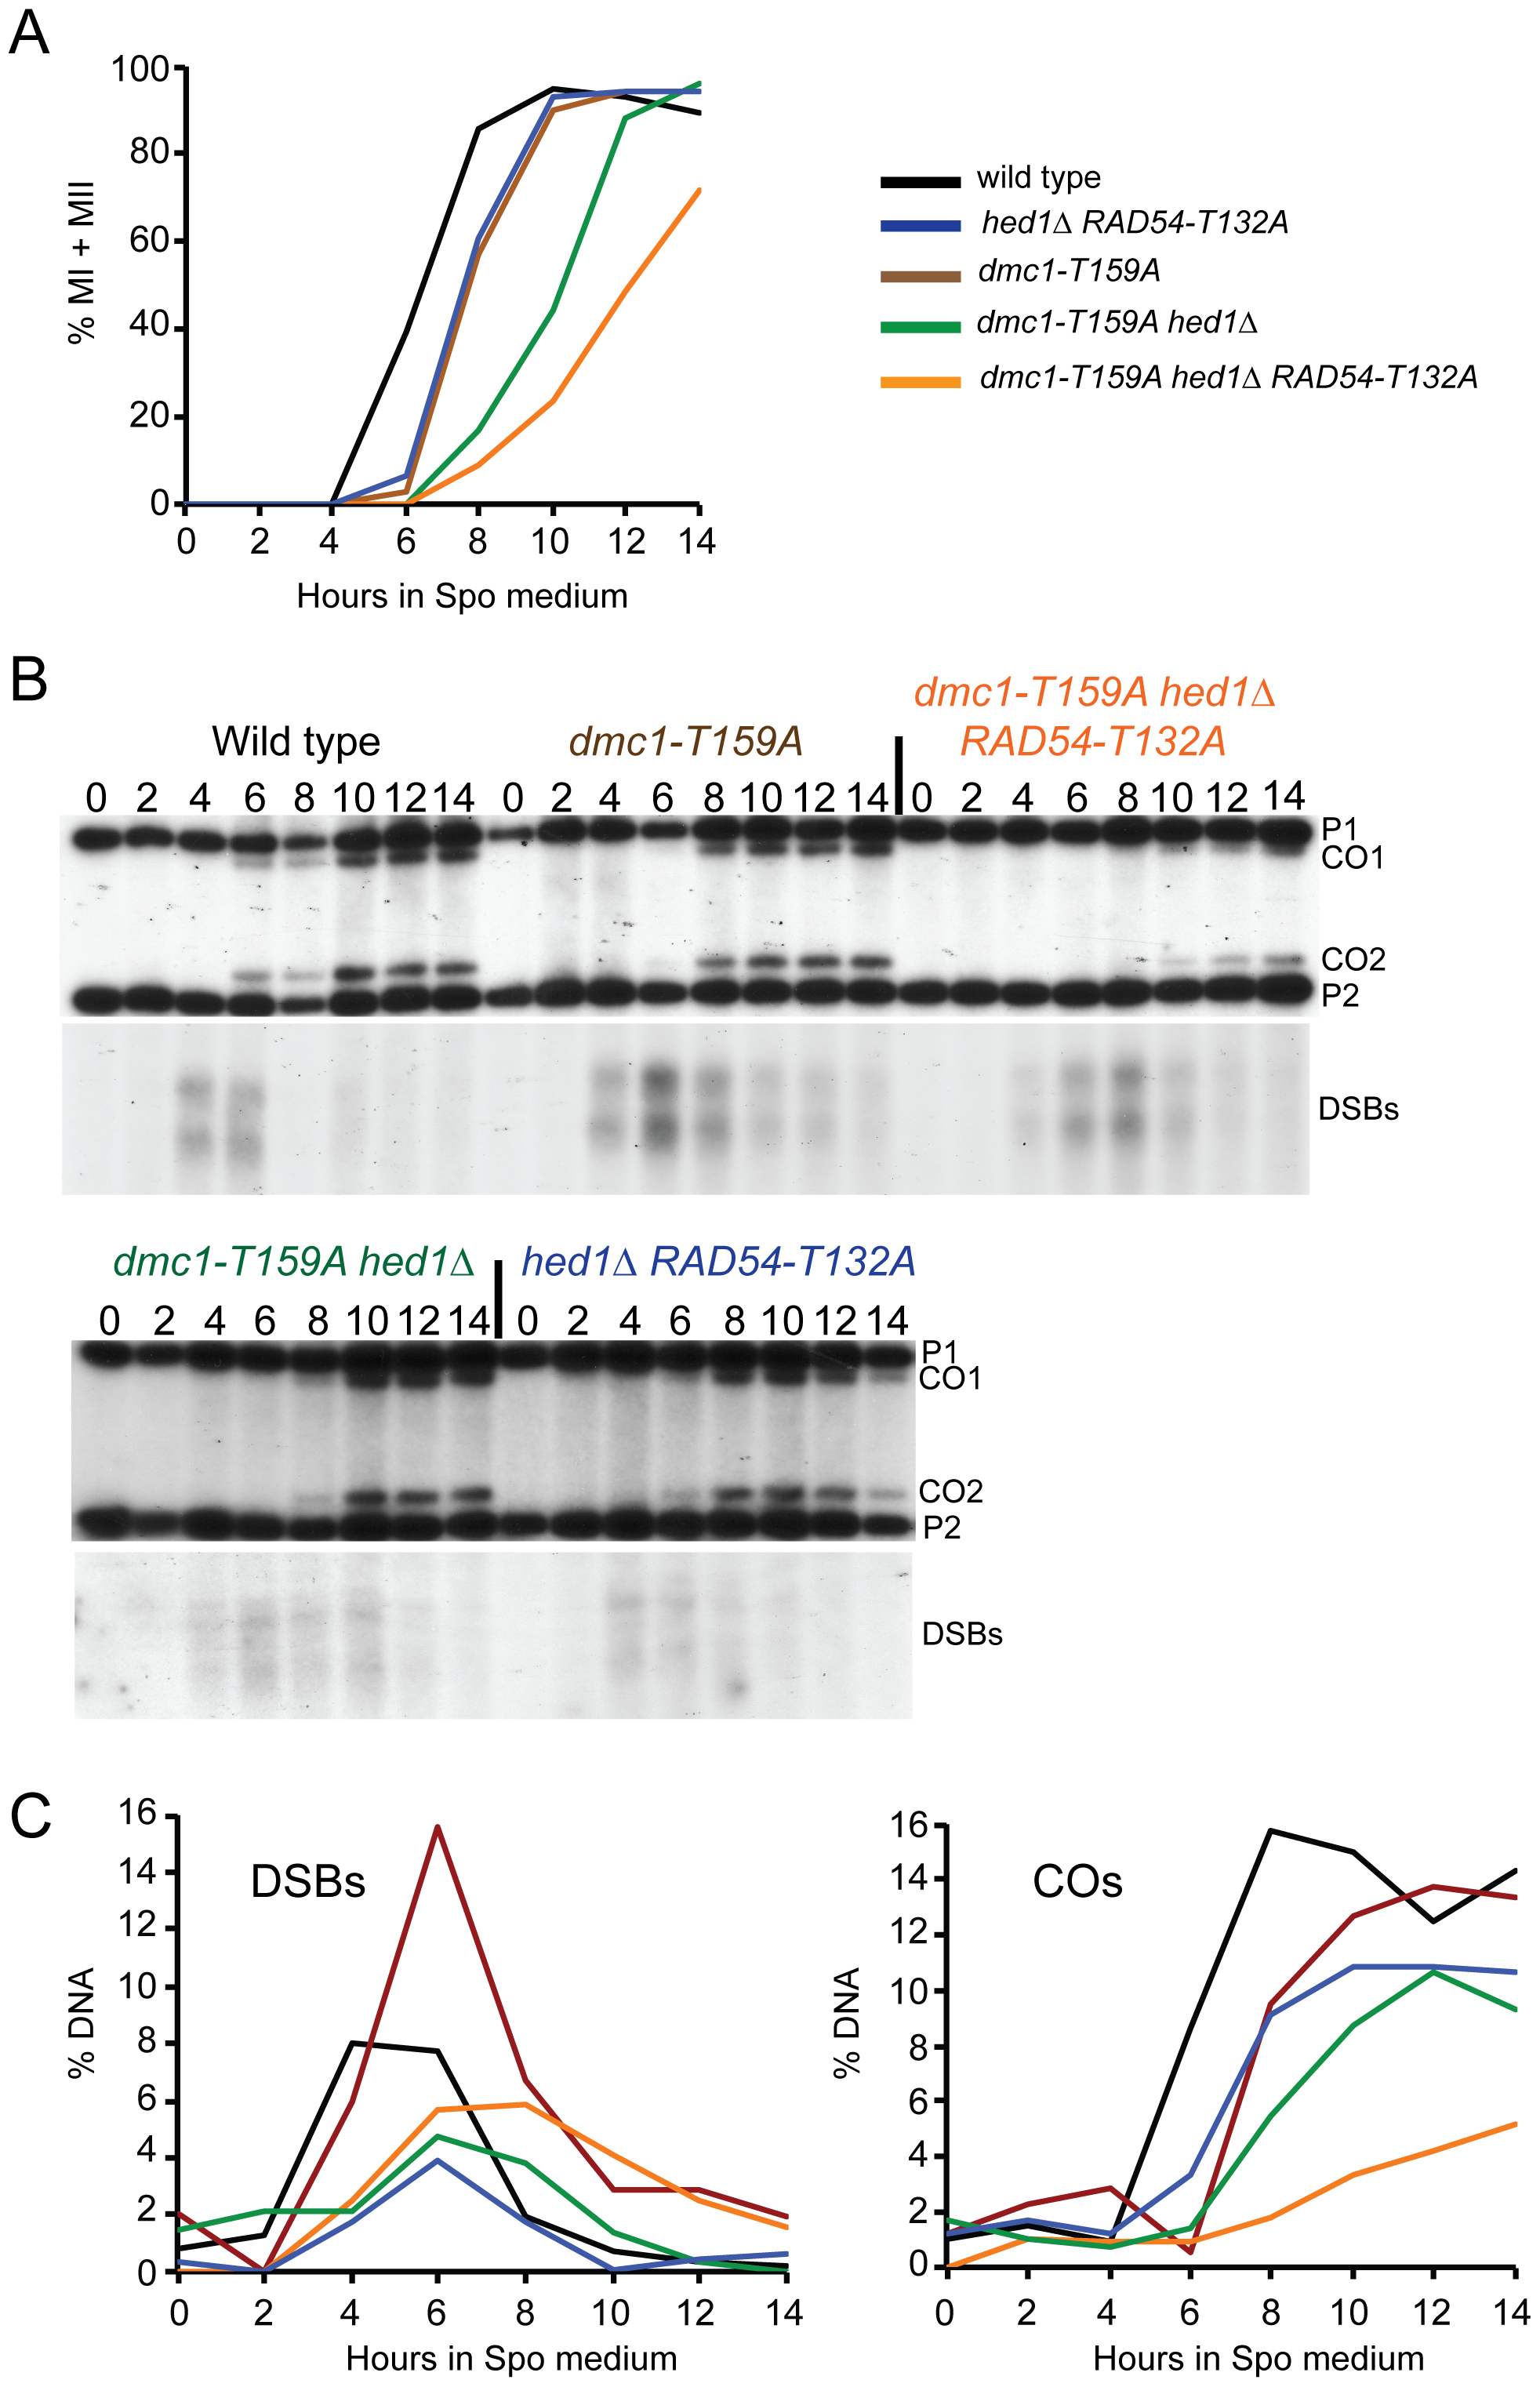 Meiotic progression and crossover formation in various <i>dmc1-T159A</i> SK1 strains.